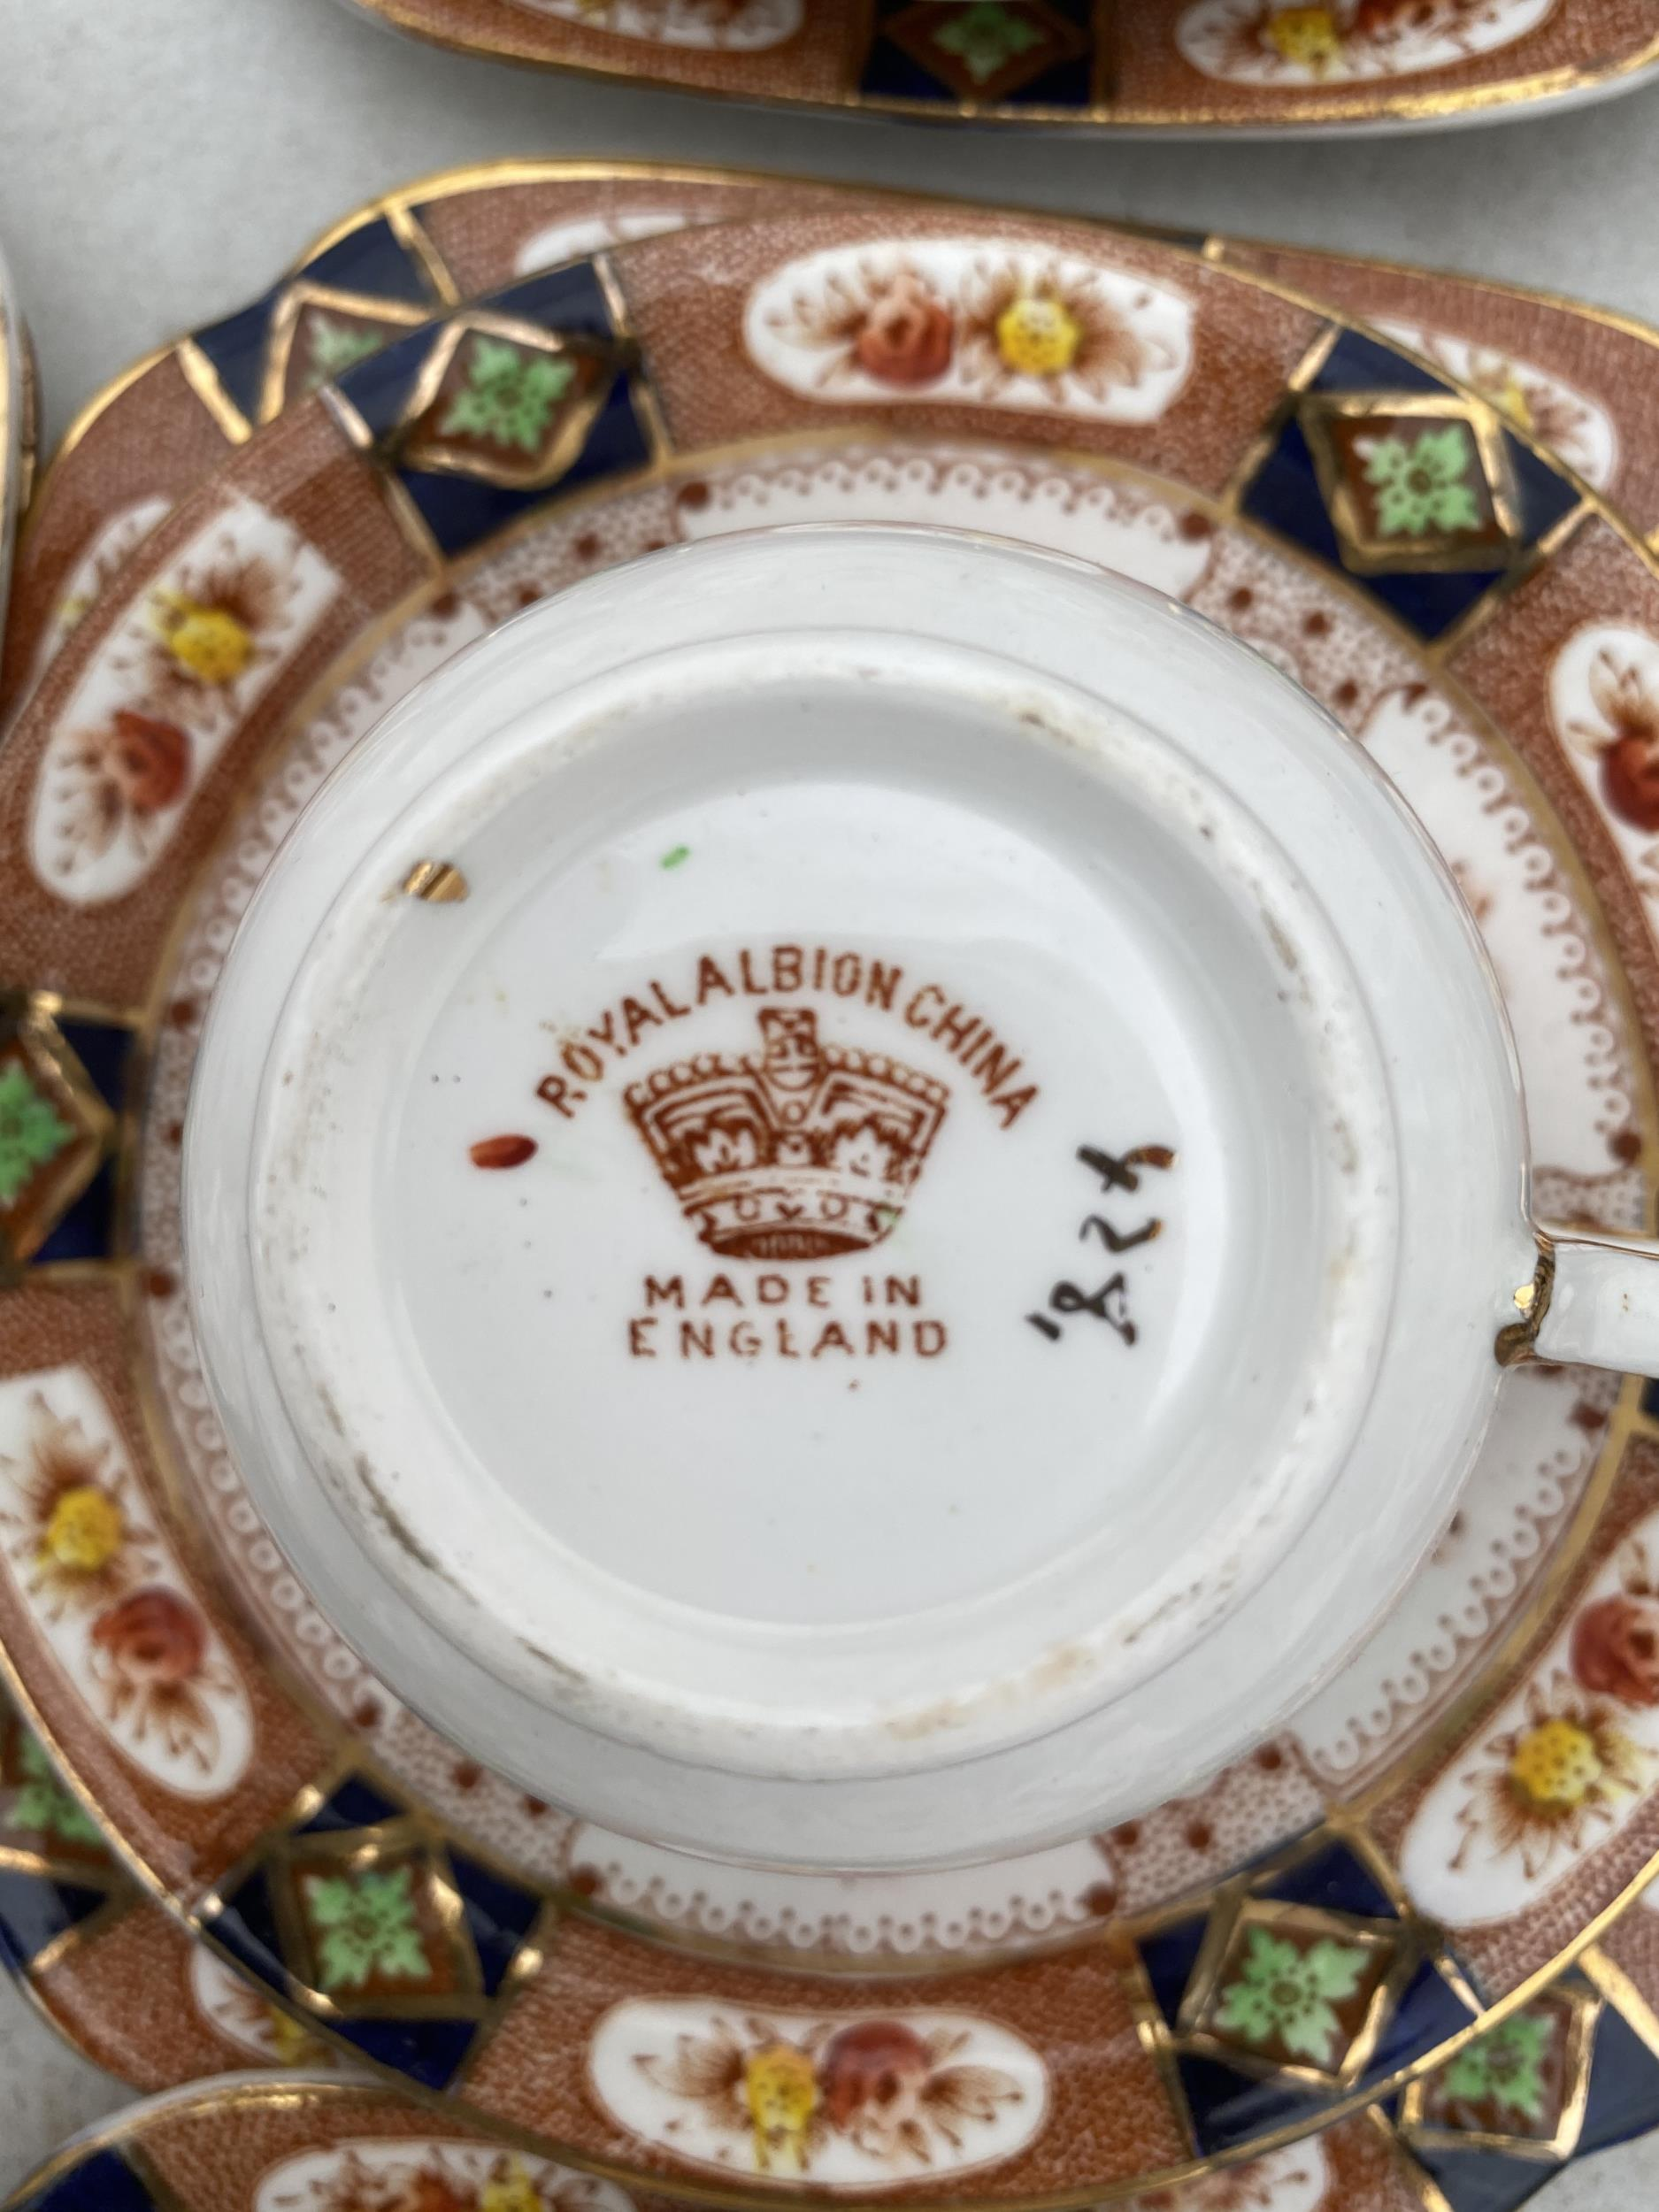 AN ASSORTMENT OF CERAMIC WARE TO INCLUDE ROYAL ALBION TRIOS ETC - Image 5 of 5